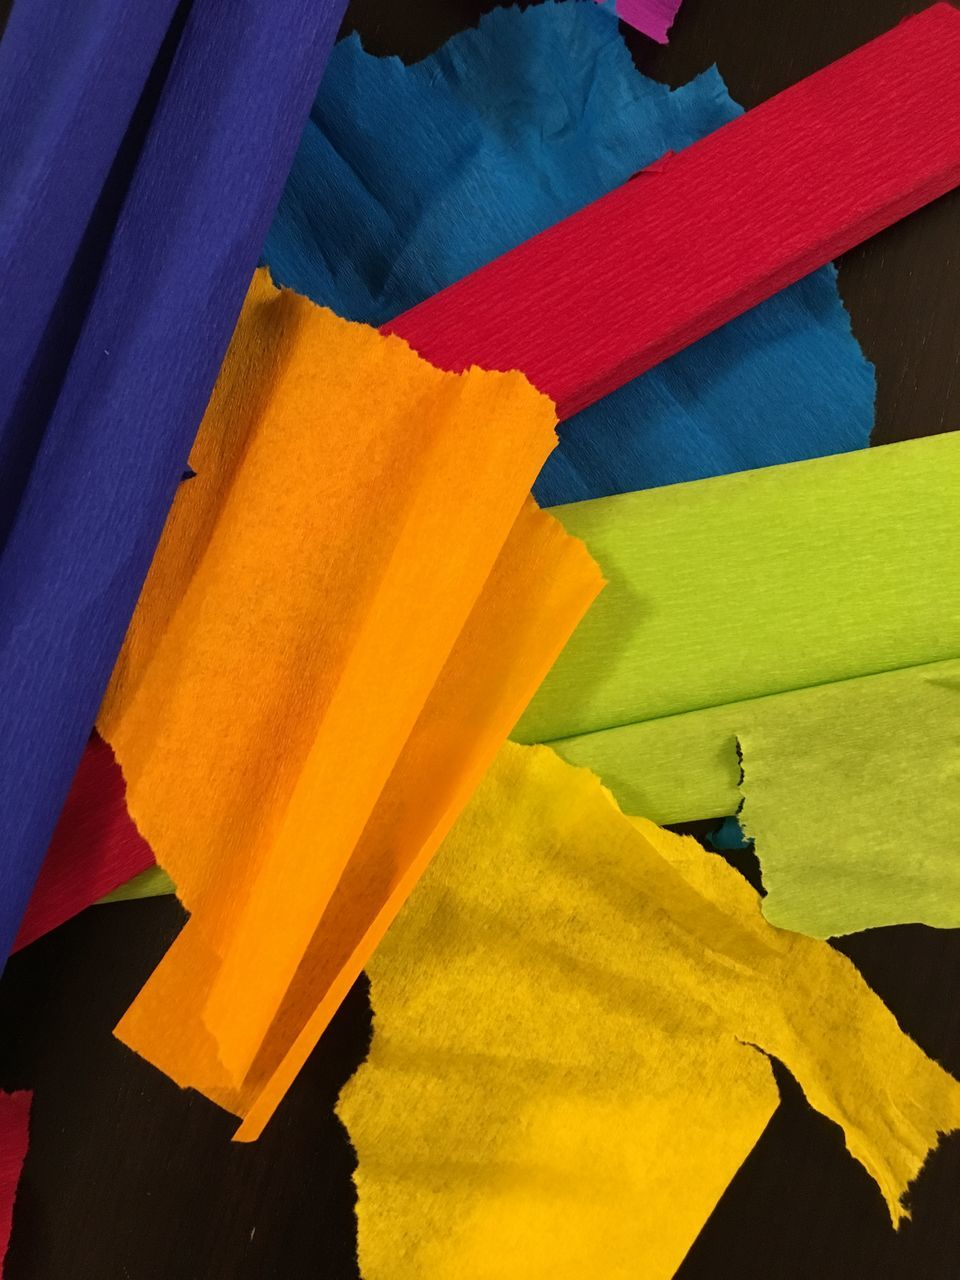 textile, multi colored, fabric, no people, variation, day, yellow, outdoors, hanging, drying, close-up